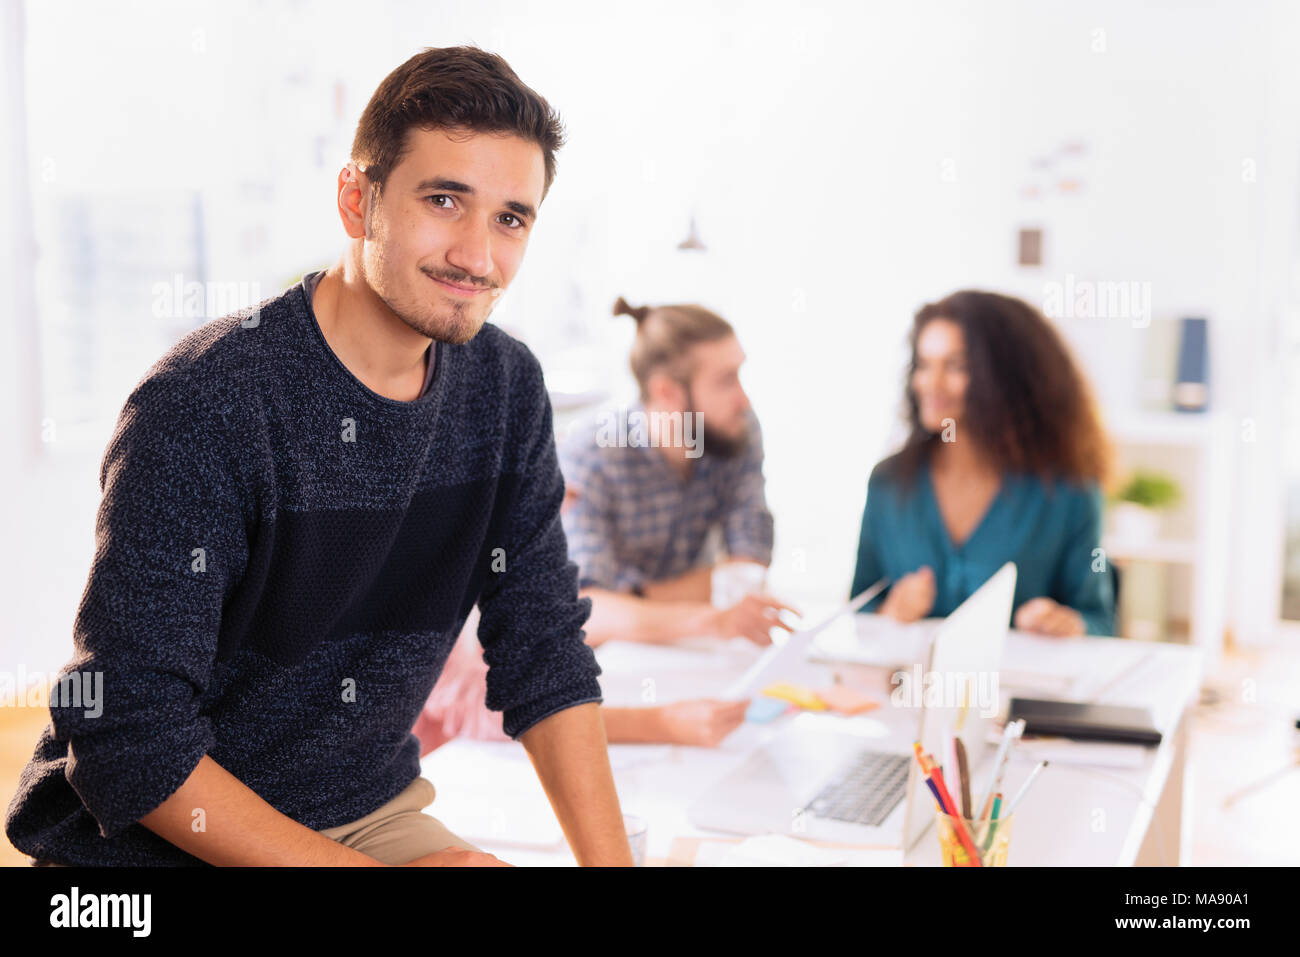 At the office. Portrait of a young man looking at the camera - Stock Image